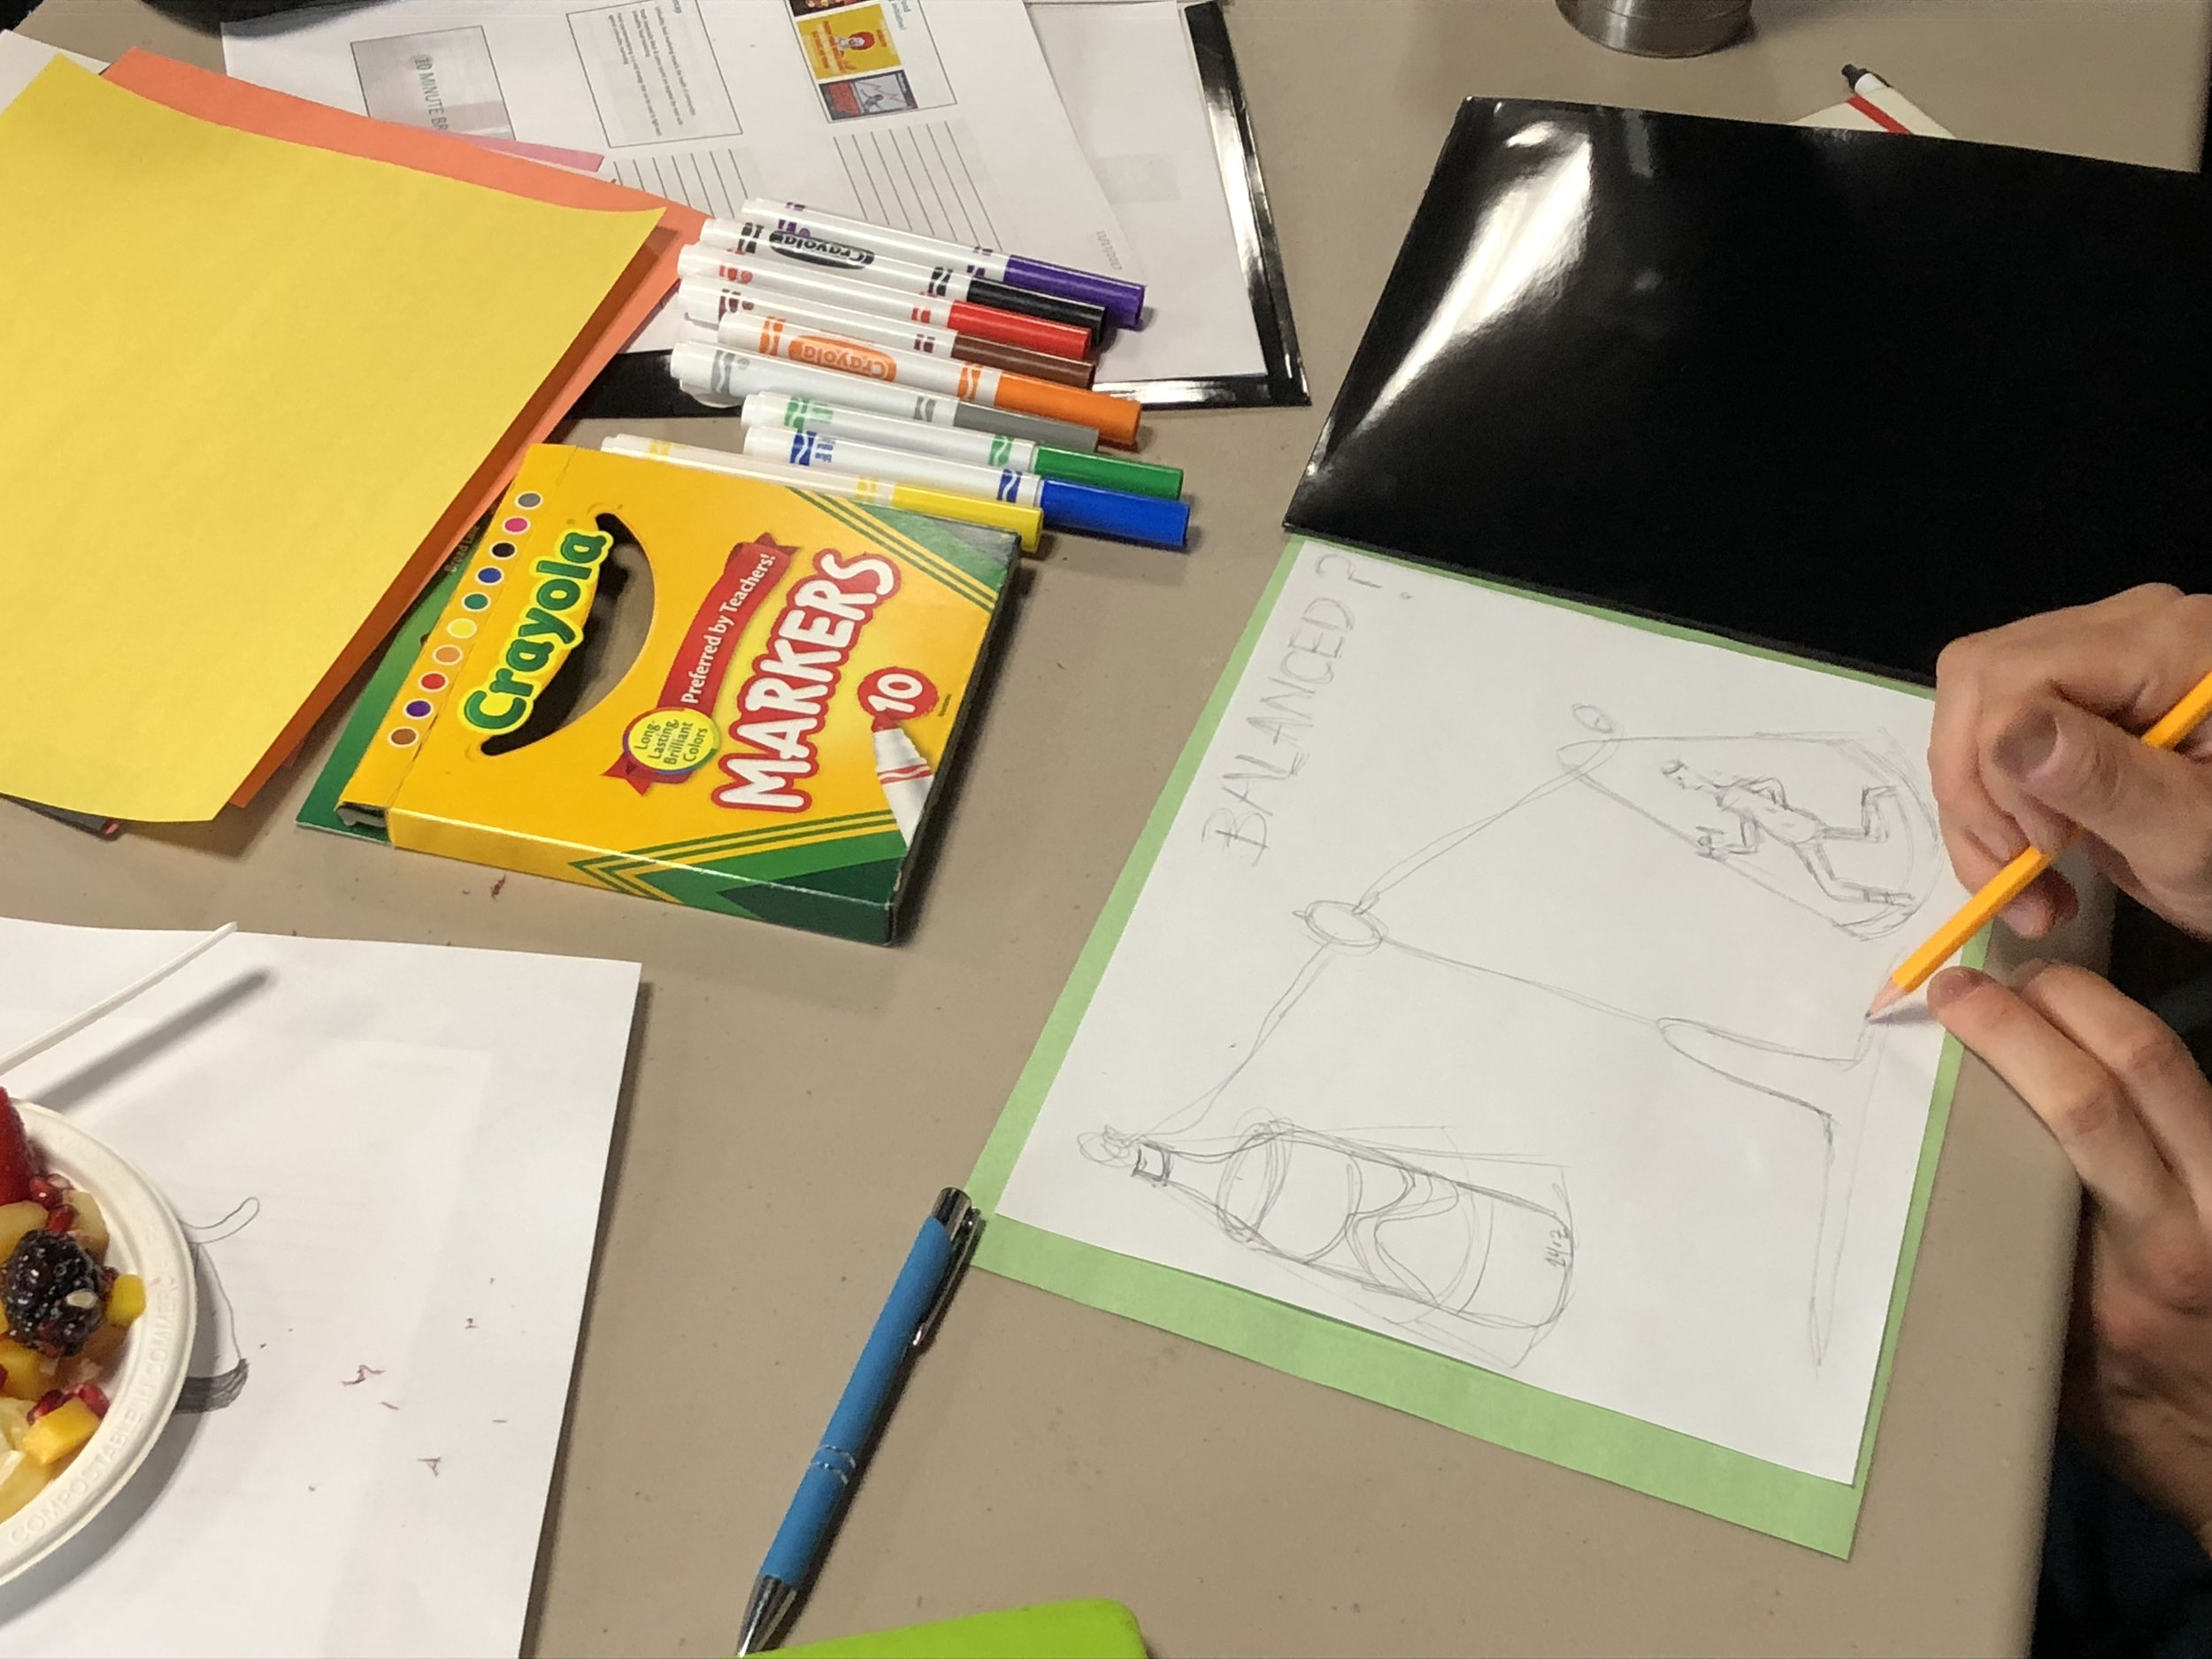 Participants from the Countermarketing Staff Training Program creating a countermarketing image against sugary beverages.